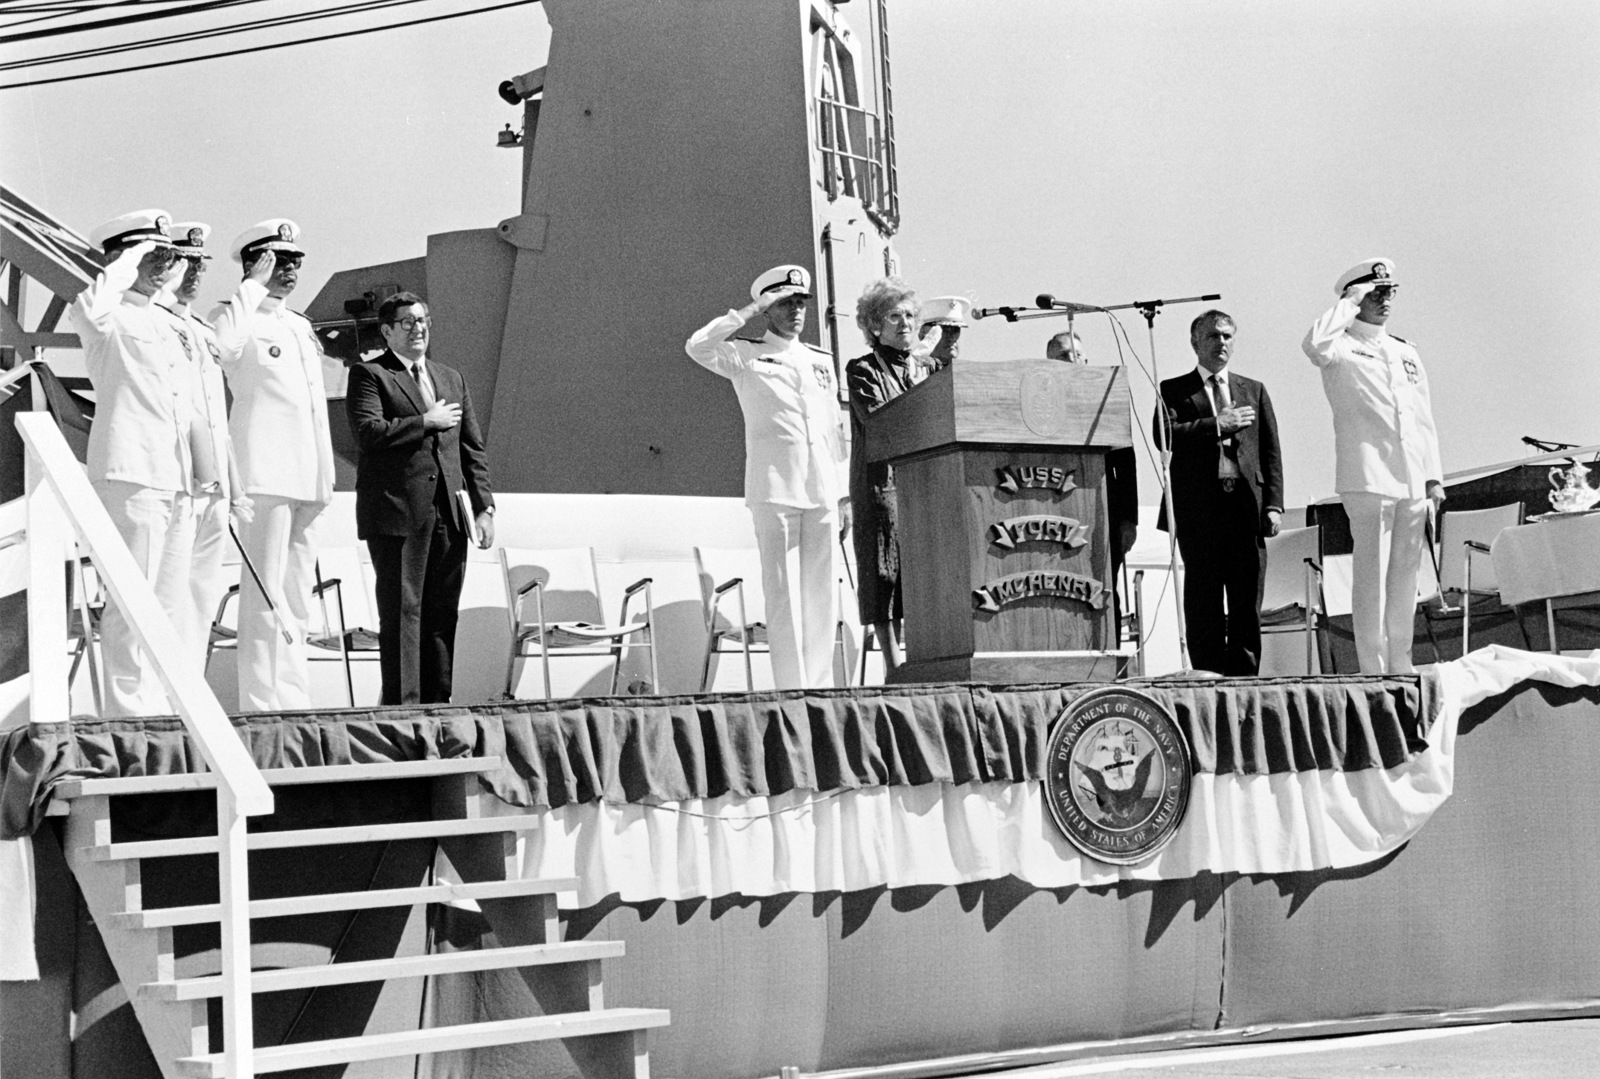 Distinguished guests pay honor to the flag during the commissioning of the dock ship USS FORT MCHENRY (LSD 43).  They are, left to right:  Captain (CAPT) J. Graham, USN, Chaplain, CAPT P. Grasser, Rear Admiral (RDML) (lower half) J.P. Reason, P.A. Schneider, Naval Sea Systems Command; Vice Admiral (VADM) G.W. Davis Jr., commander, Naval Surface Force, Pacific; Representative Helen D. Bentley, Republican-Maryland, Major General (MGEN) C.E. Mundy Jr., US Marine Corps (USMC); Retired Colonel (COL) E.E. Shoults, USMC; J.R. Santosuosso, president, Lockheed Shipbuilding Co.; Commander (CDR) G.S. Rhodes, commanding officer, USS FORT MCHENRY (LSD 43)